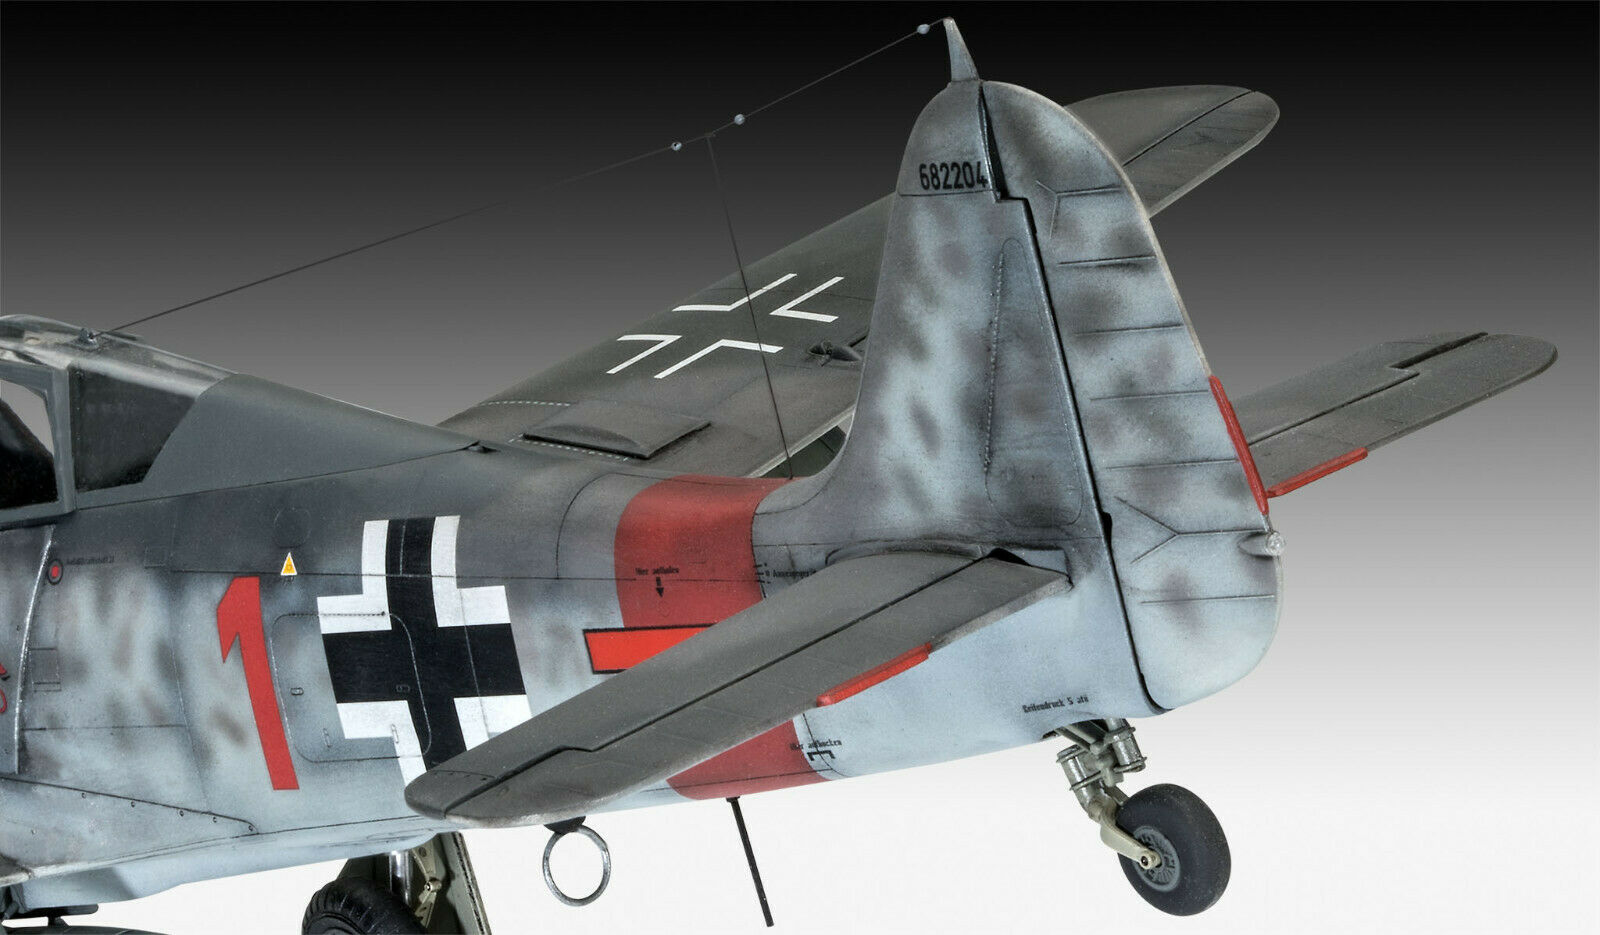 The Modelling News: Revell's June 2019 novelties are all here in our